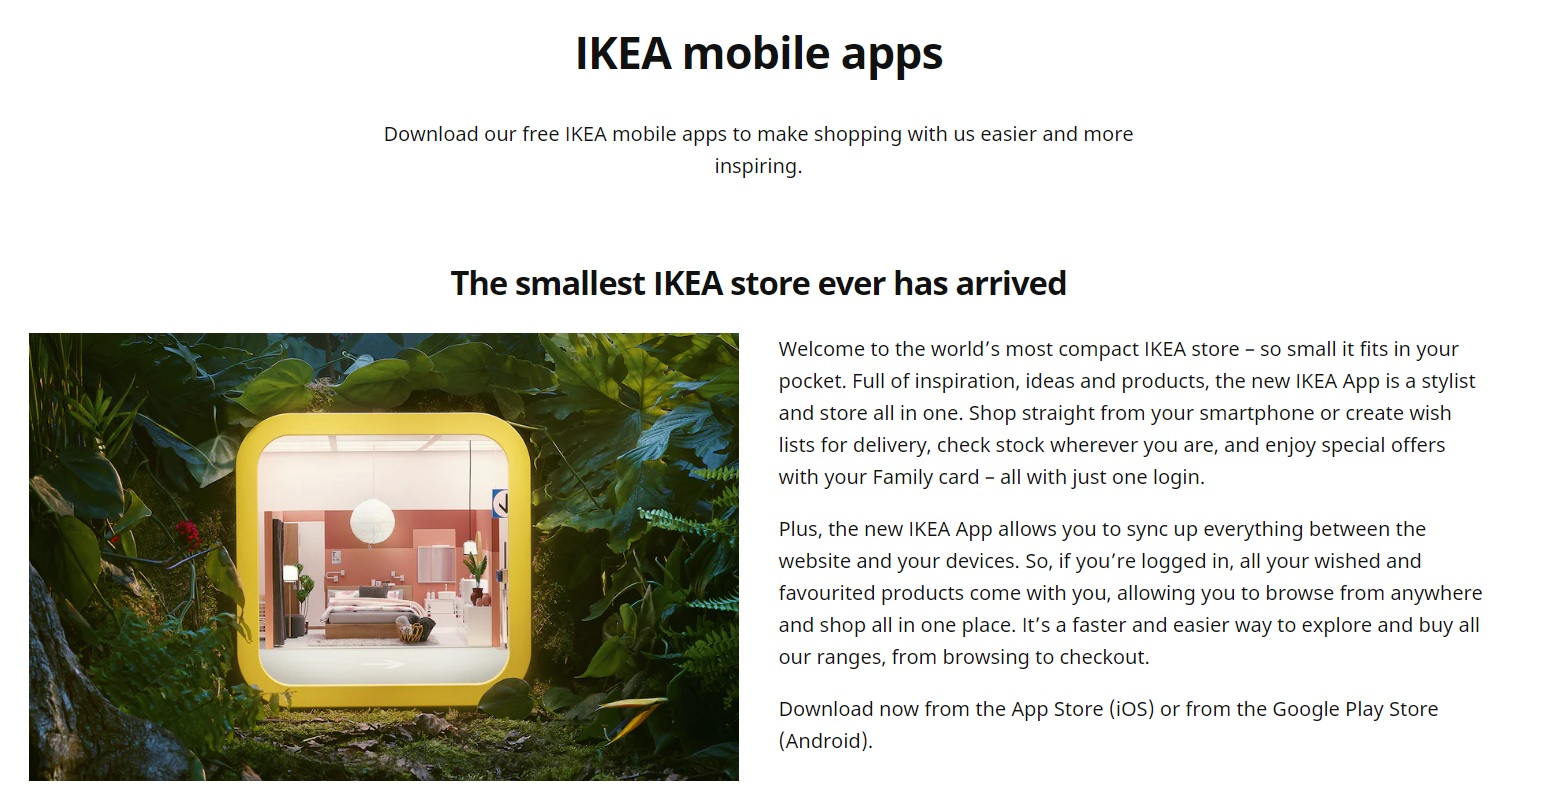 ikea-mobile-apps-case-study